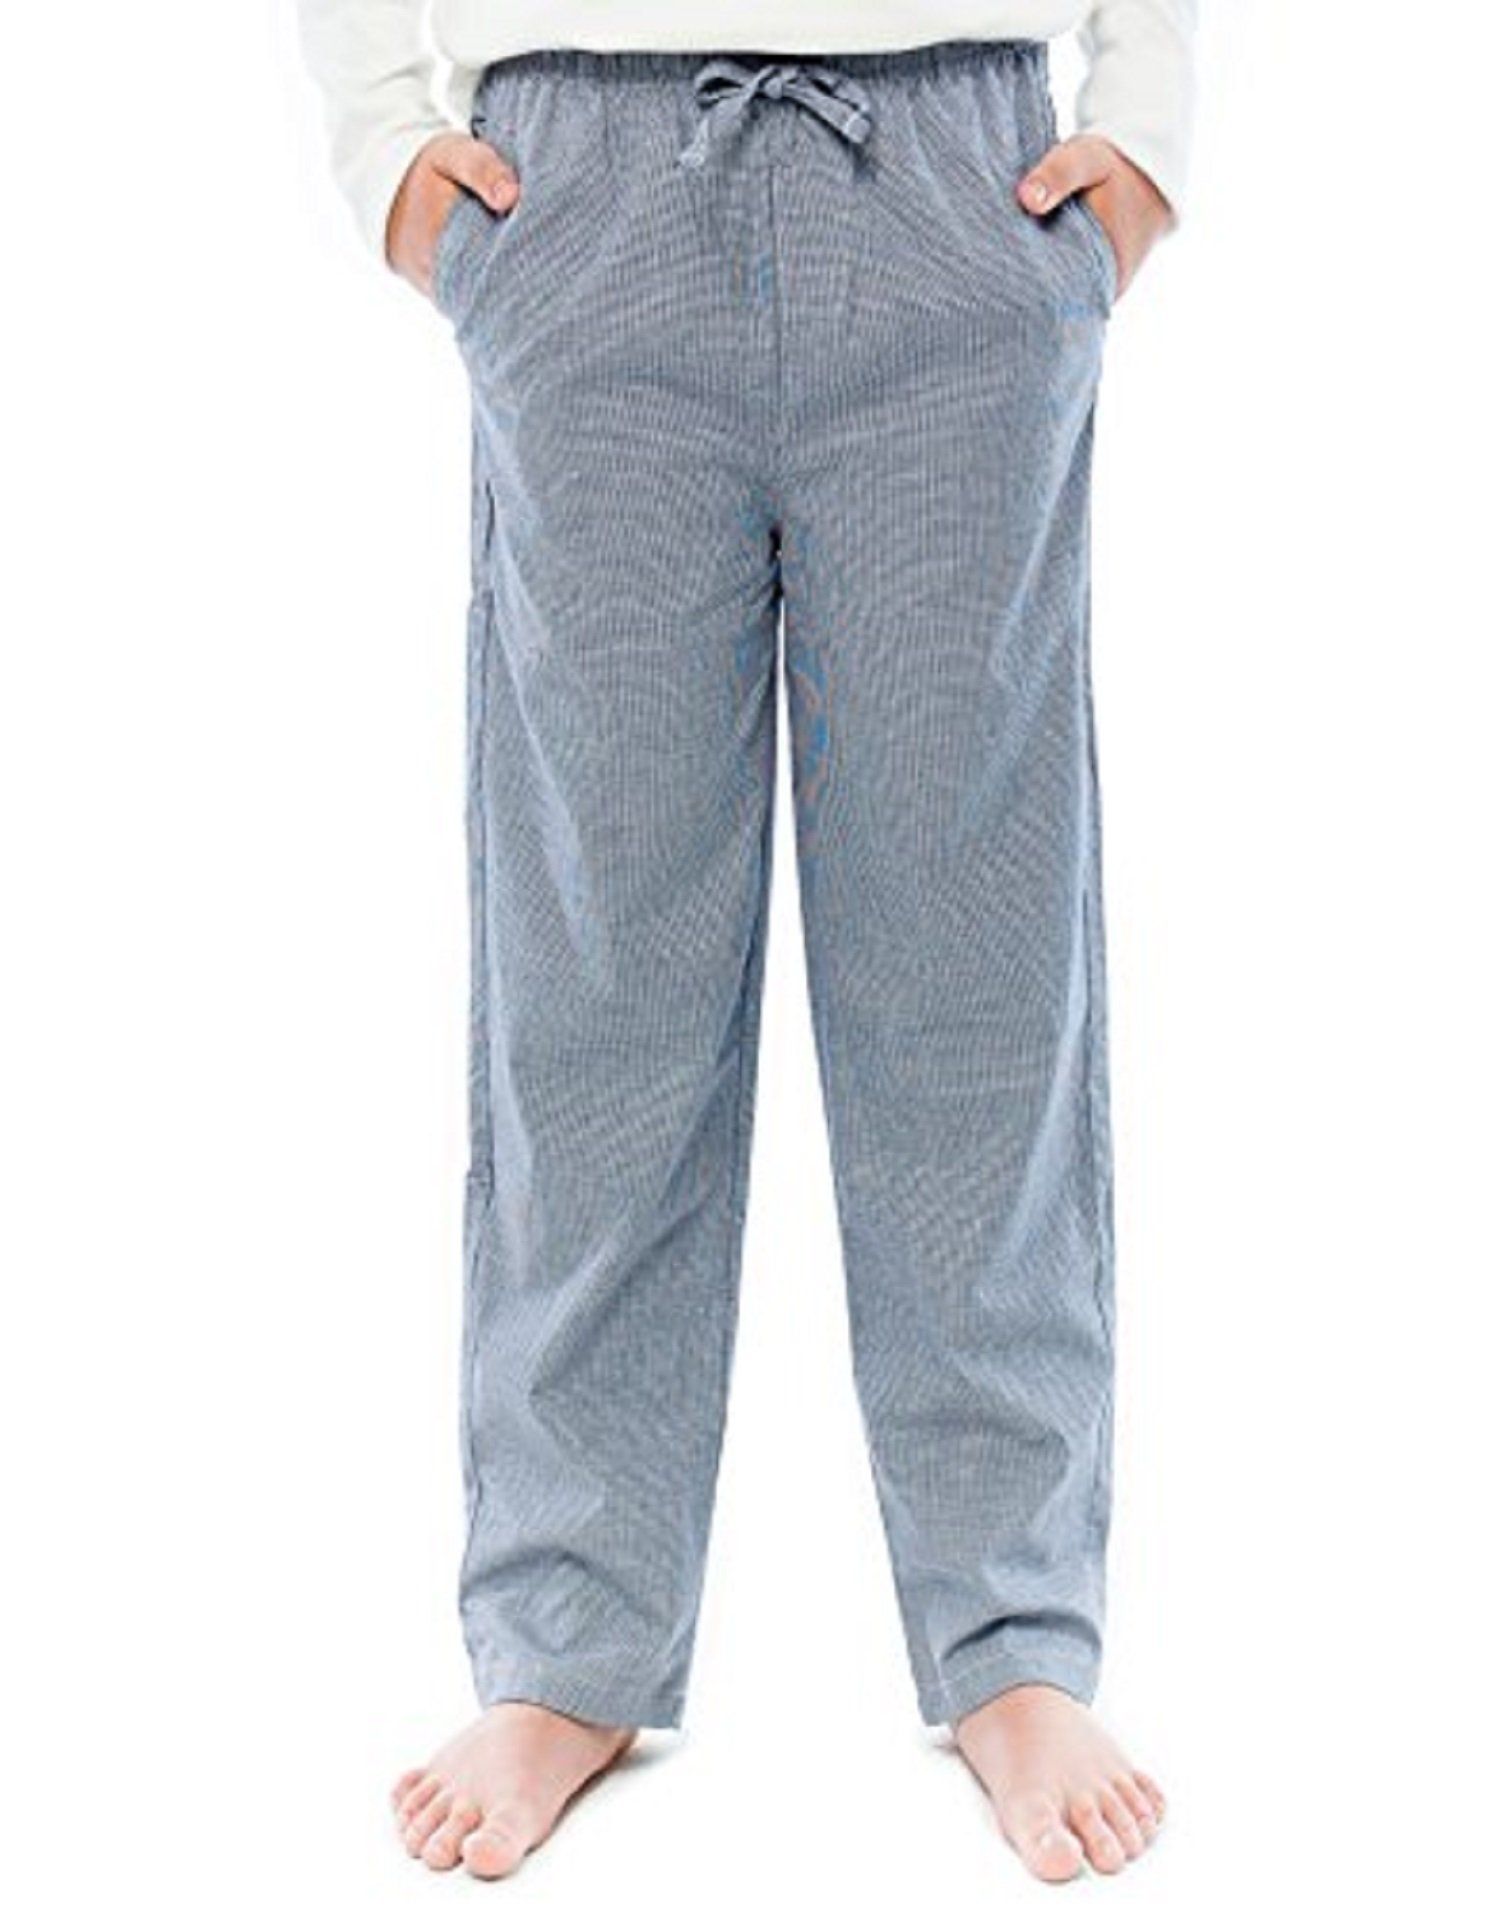 TINFL Boys Plaid Check Soft 100% Cotton Lounge Pants BP-63-Lightnavy-YM